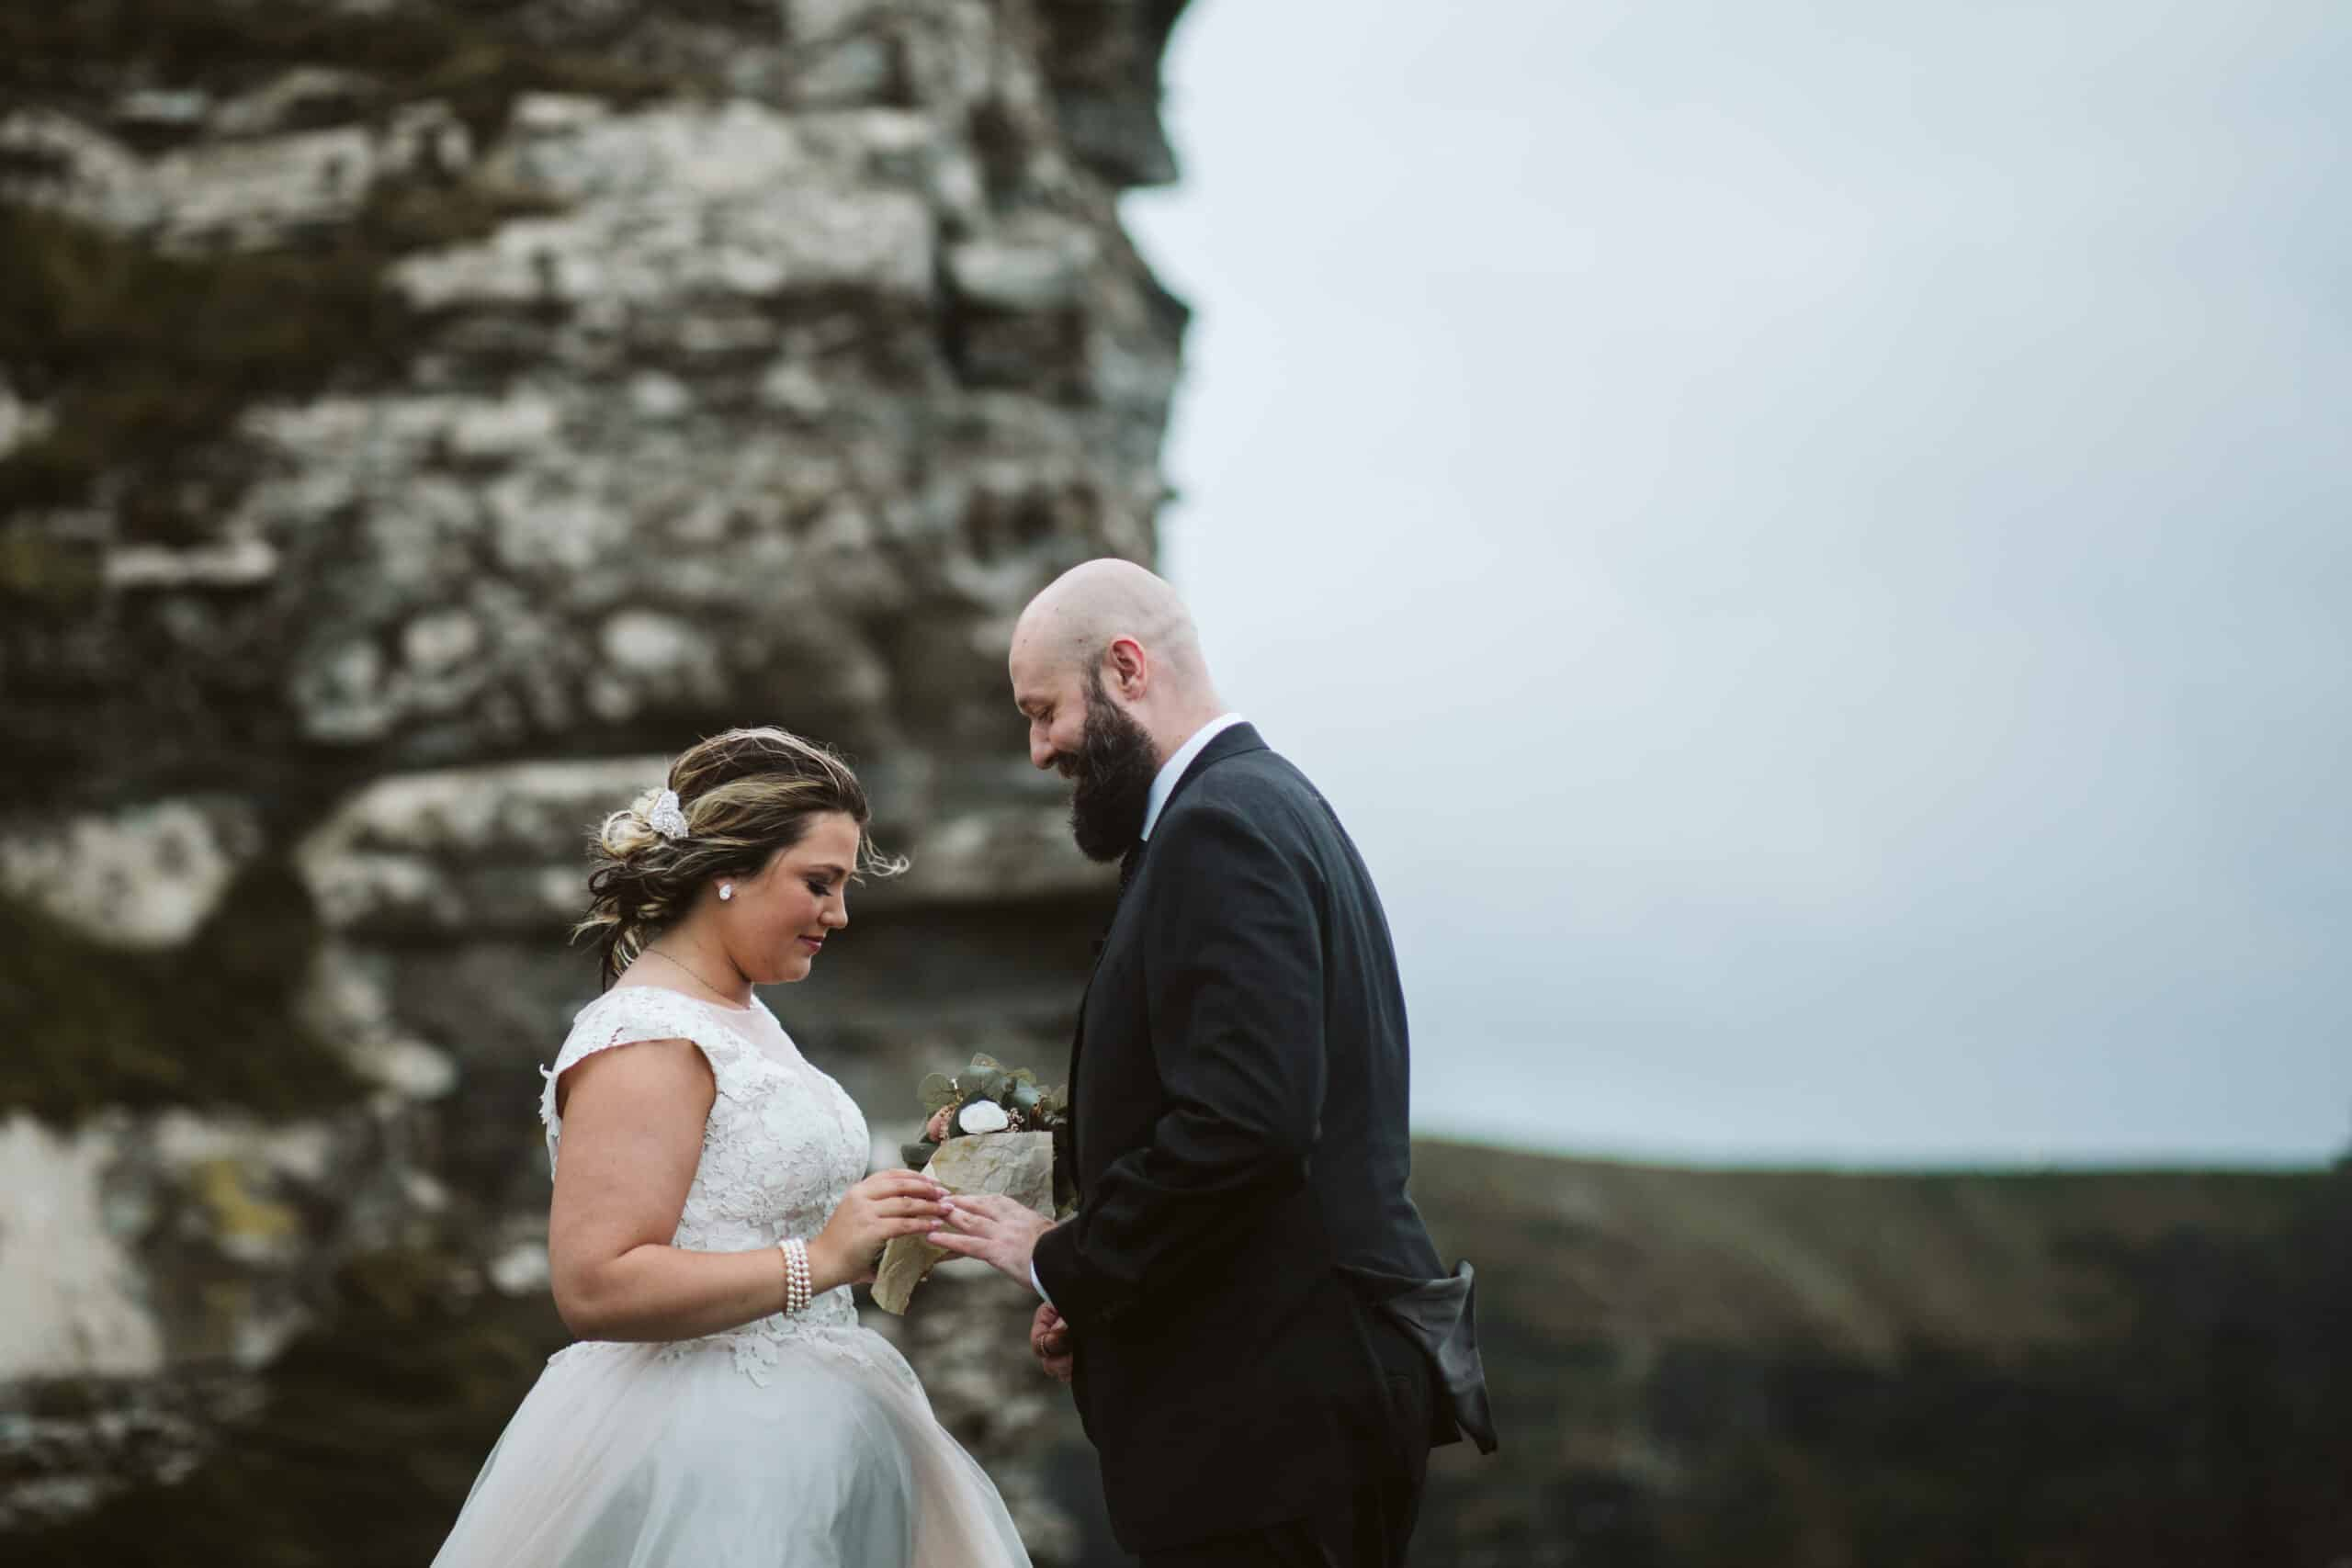 Cliffs of Moher Wedding Hags head, bride puts ring on grooms finger